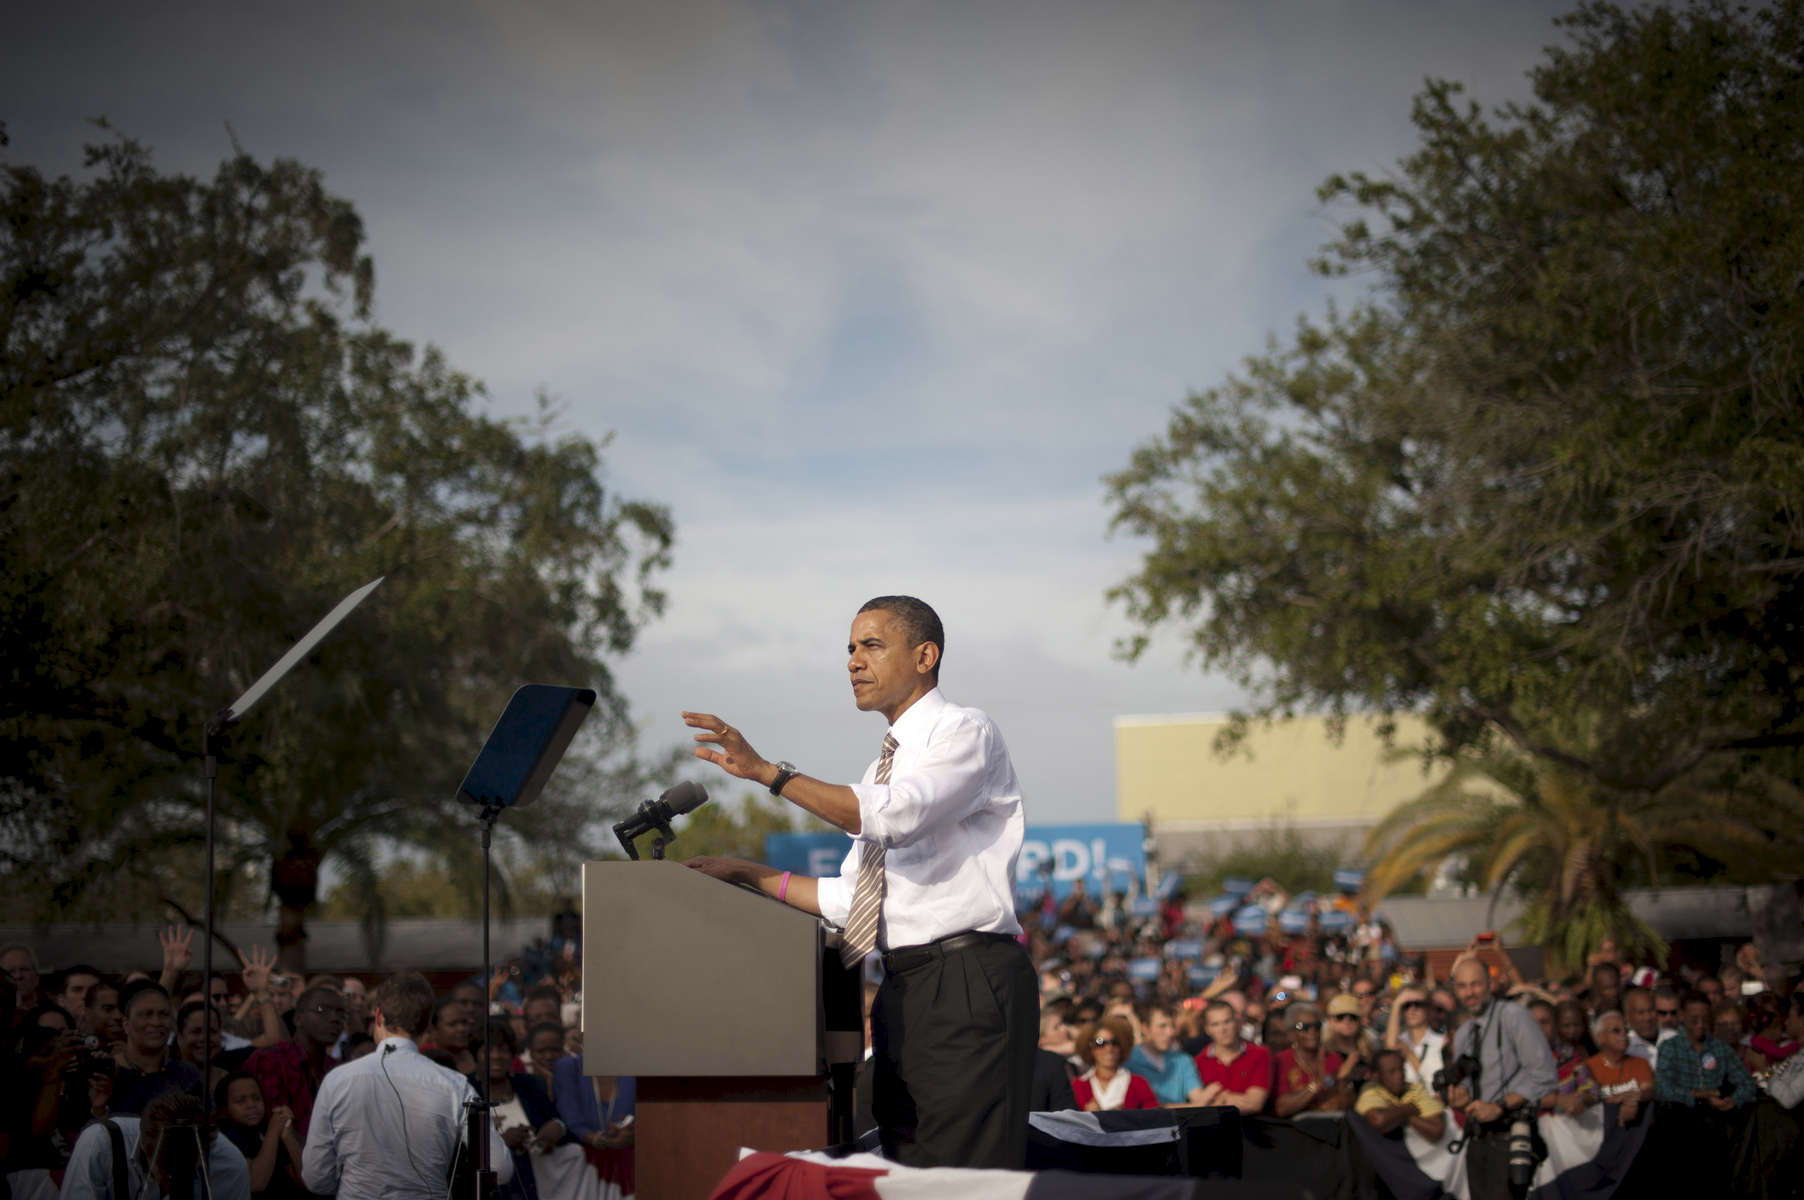 October 25, 2012 - Tampa, FL:  President Barack Obama speaks at a rally in Tampa's Centennial Park during a 48 hour straight swing of campaign events. (Scout Tufankjian for Obama for America/Polaris)